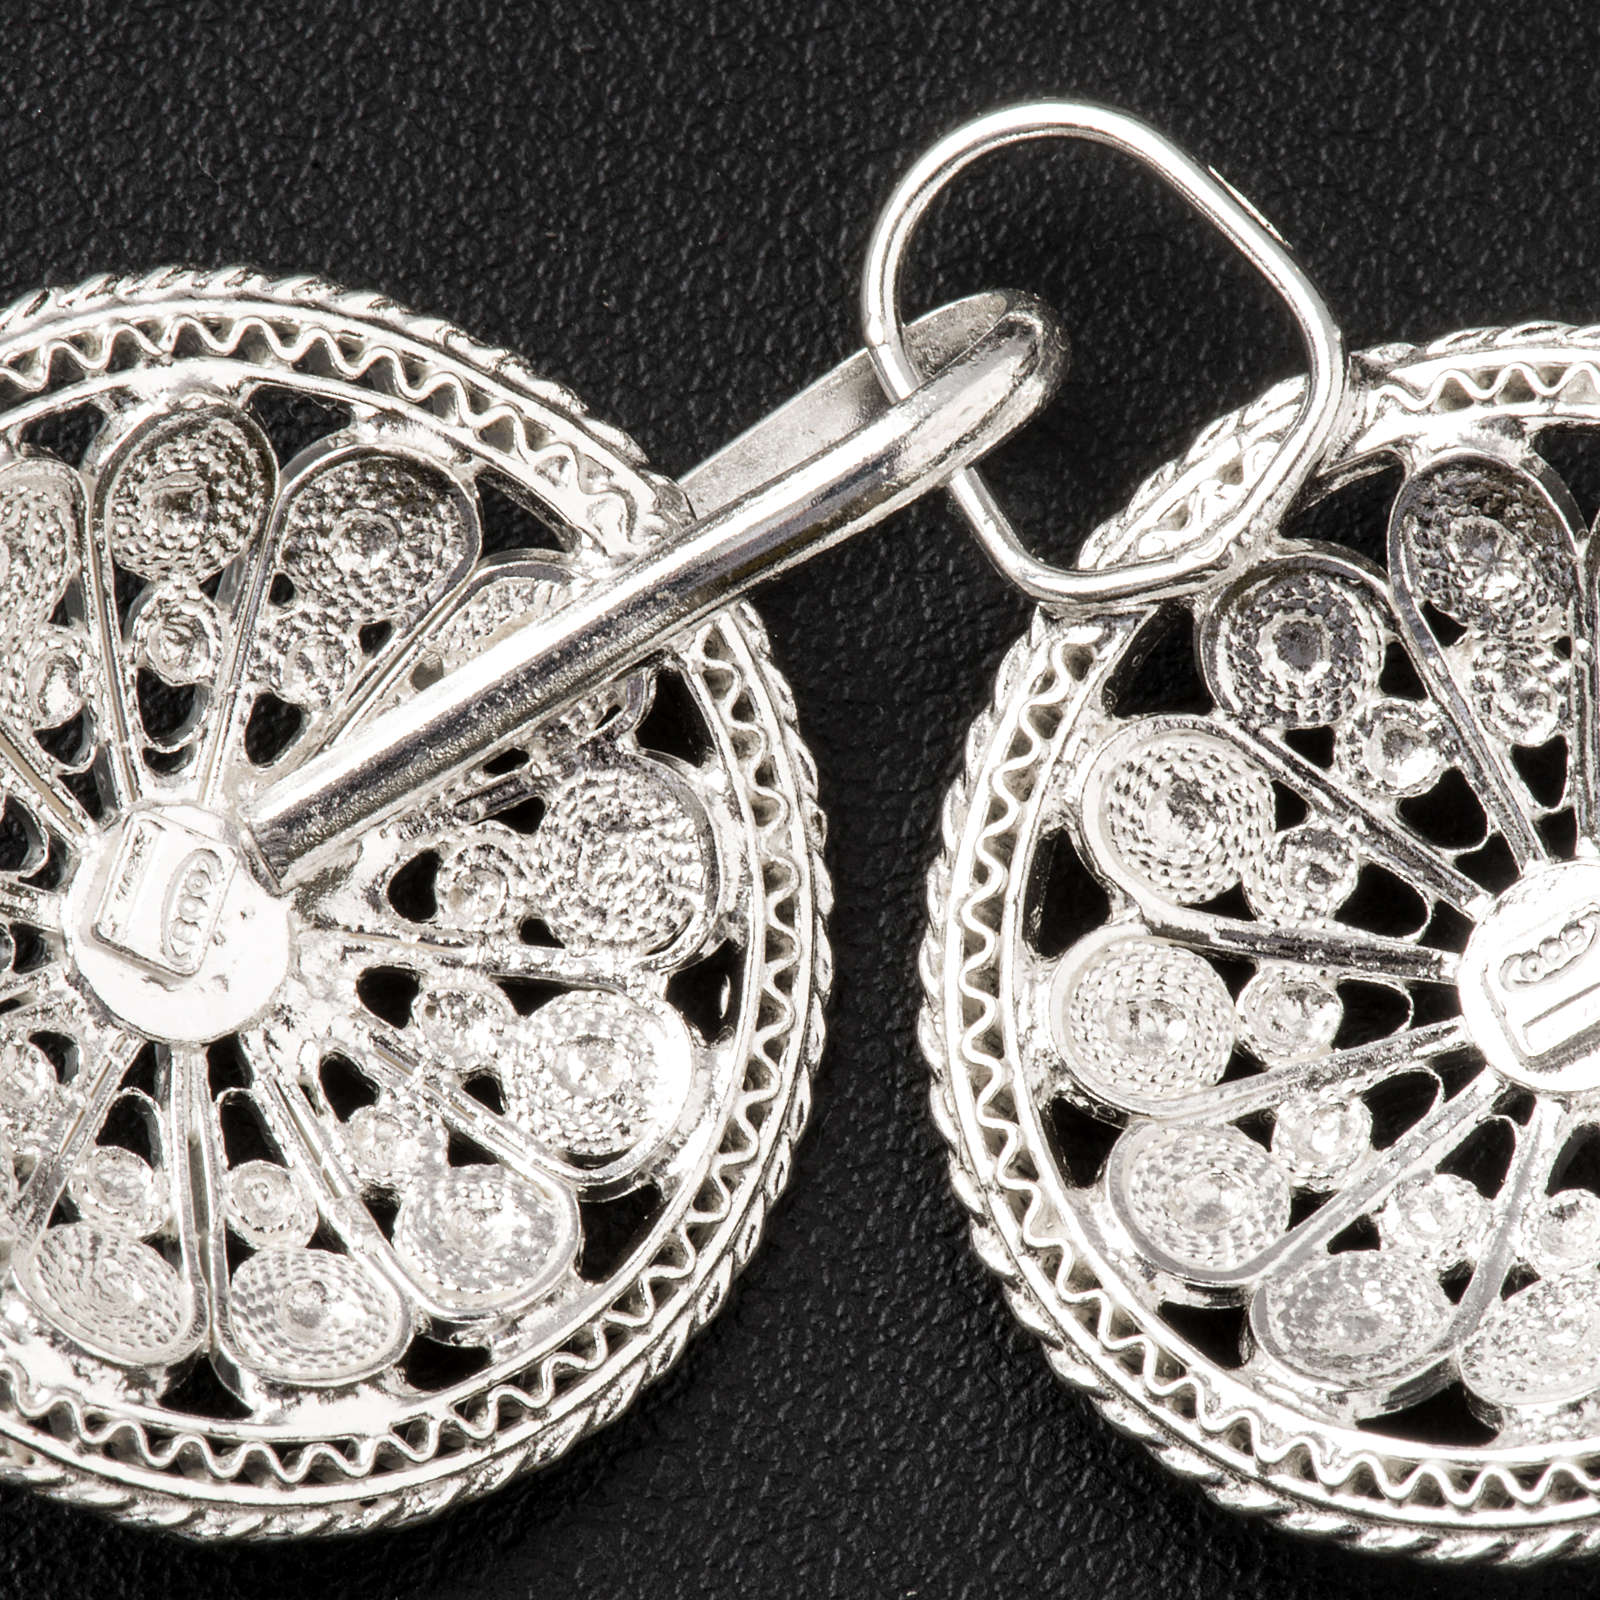 Cope Clasp in silver 800 filigree, round shaped 4